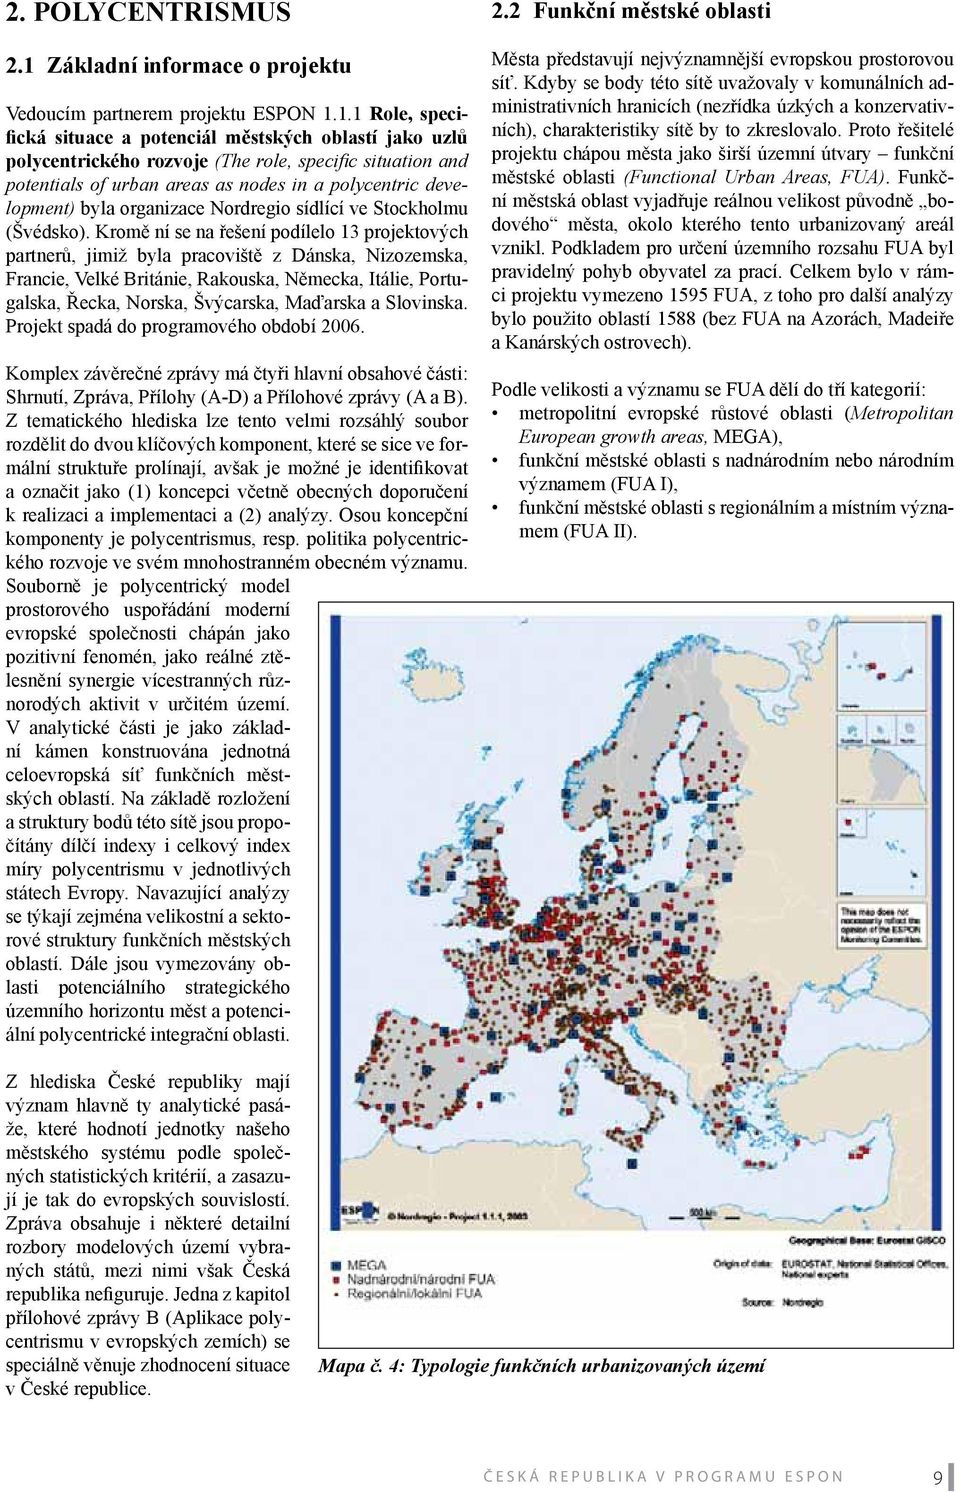 1.1 Role, specifická situace a potenciál městských oblastí jako uzlů polycentrického rozvoje (The role, specifi c situation and potentials of urban areas as nodes in a polycentric development) byla